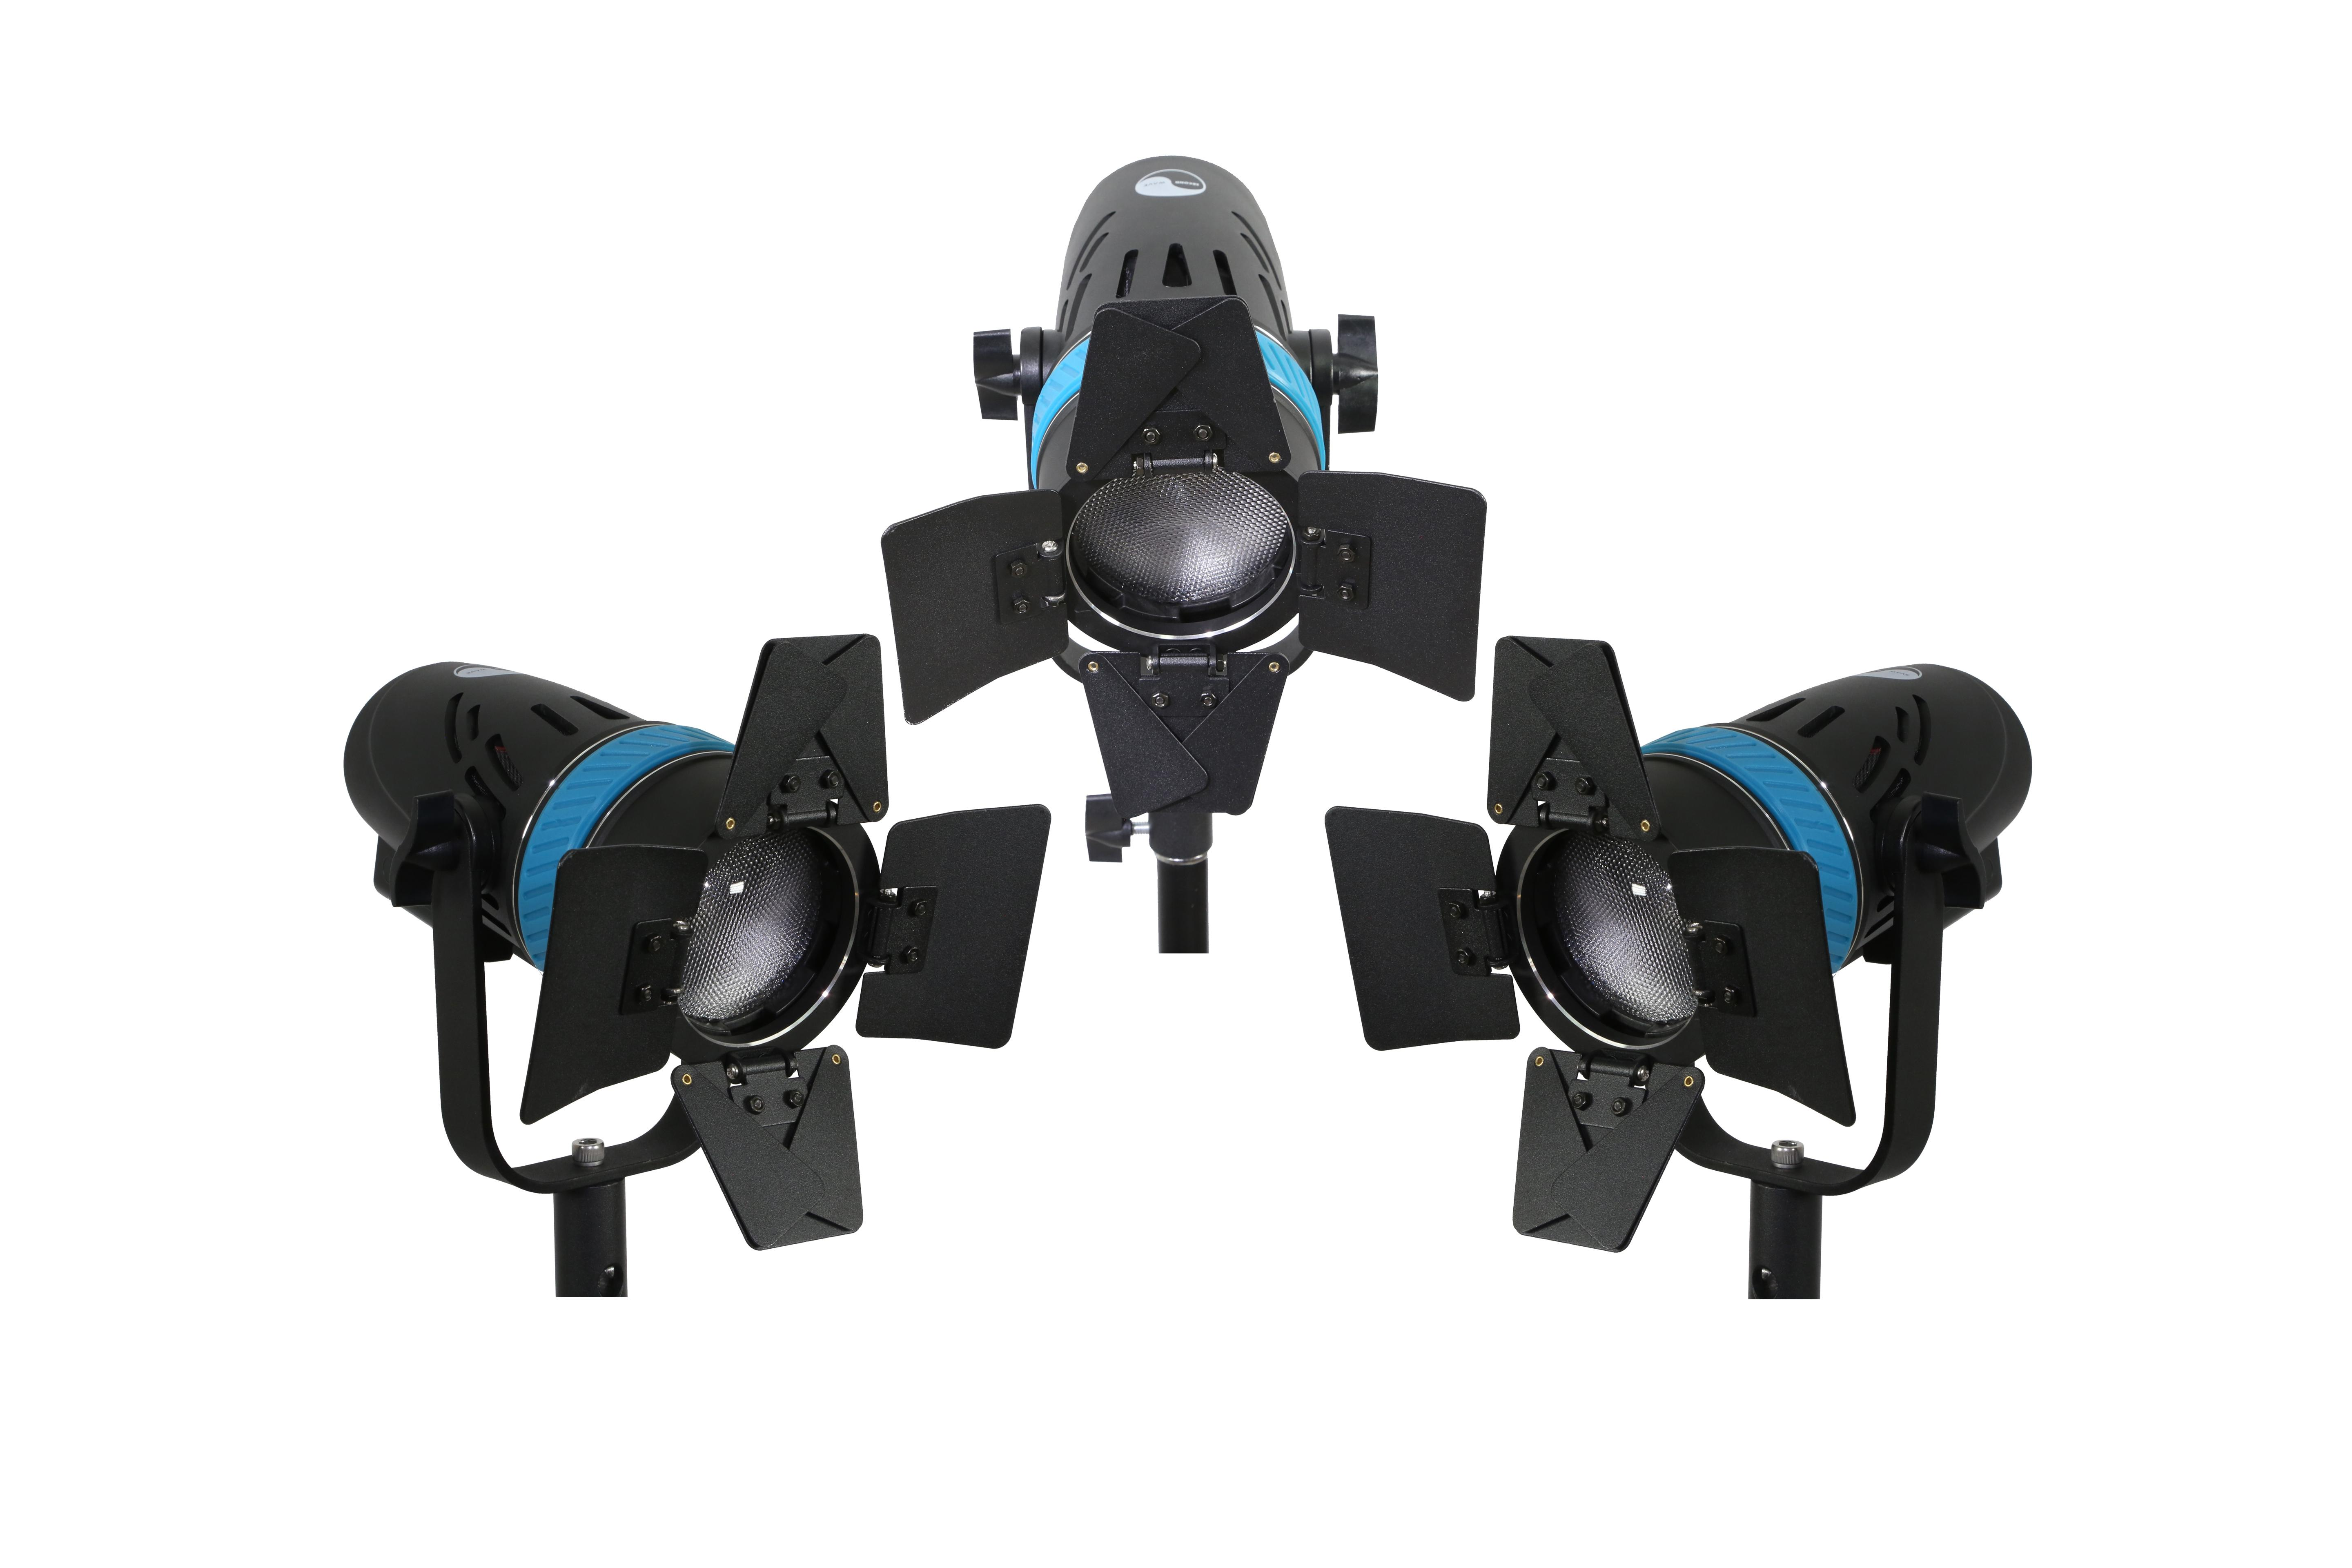 Second Wave Daylight Kit 3 x CMT60 Spotlight